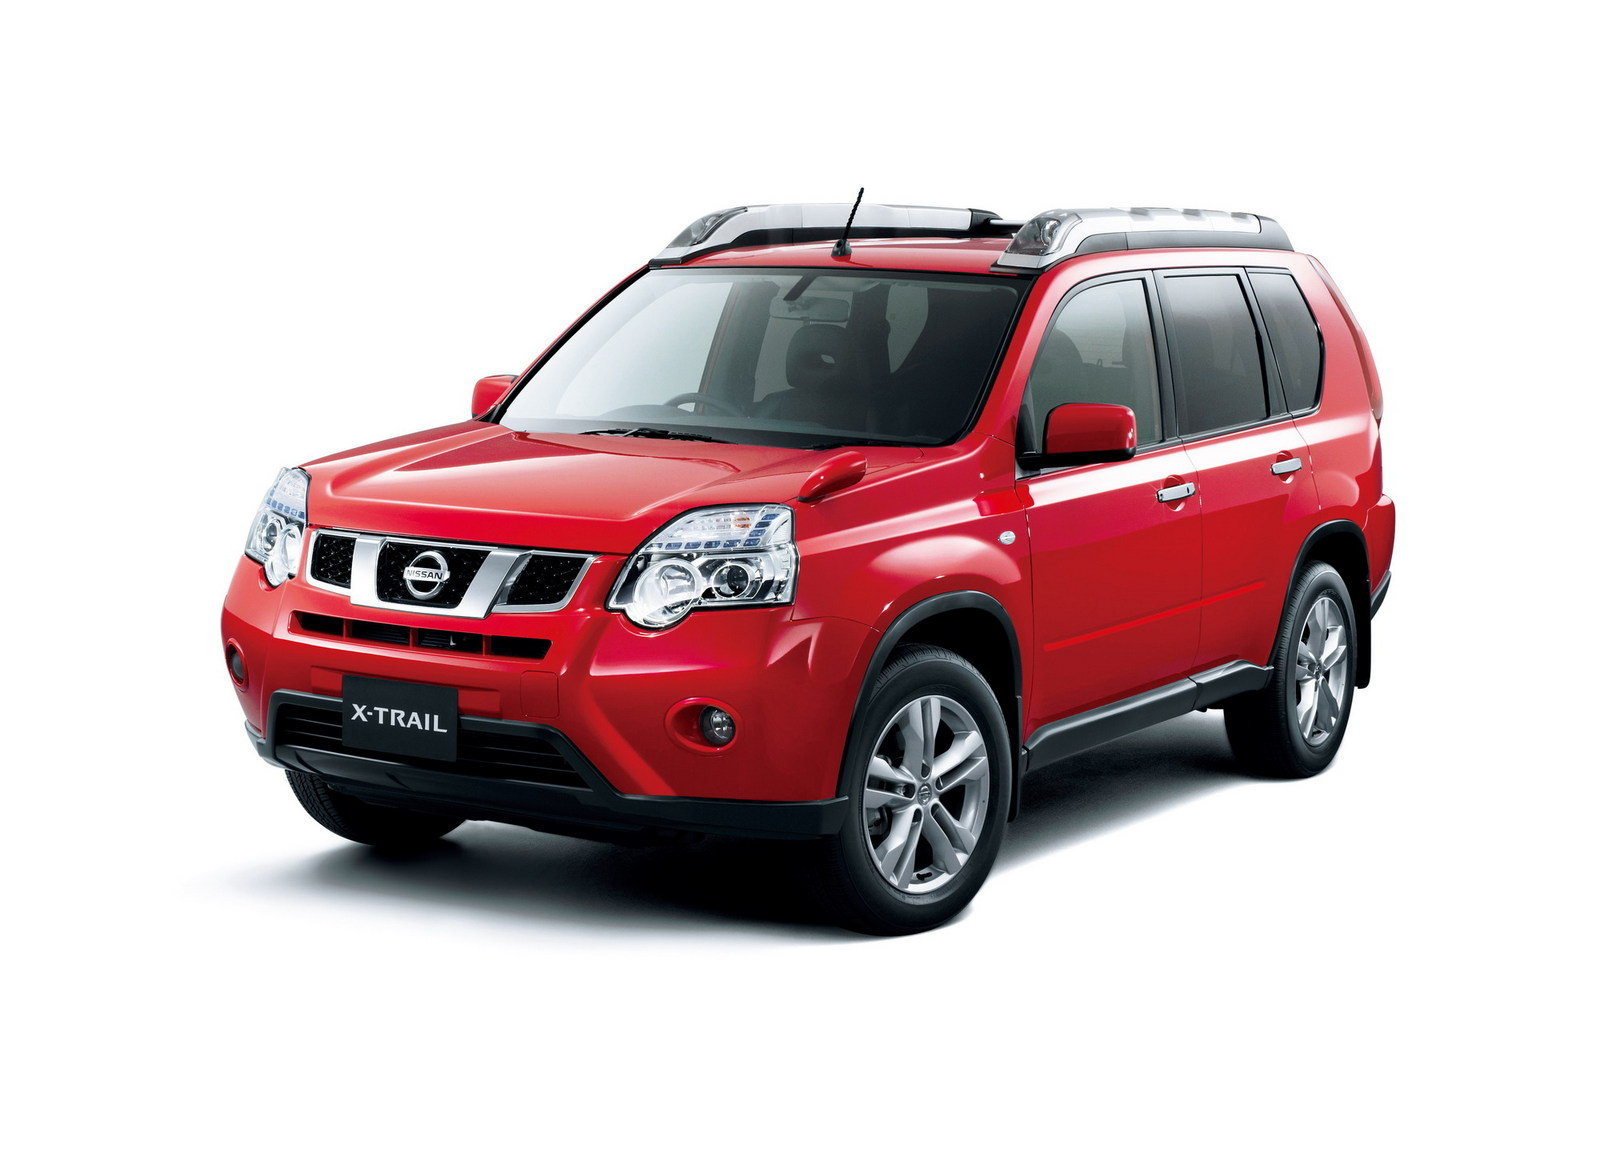 2011 nissan x trail review top speed. Black Bedroom Furniture Sets. Home Design Ideas